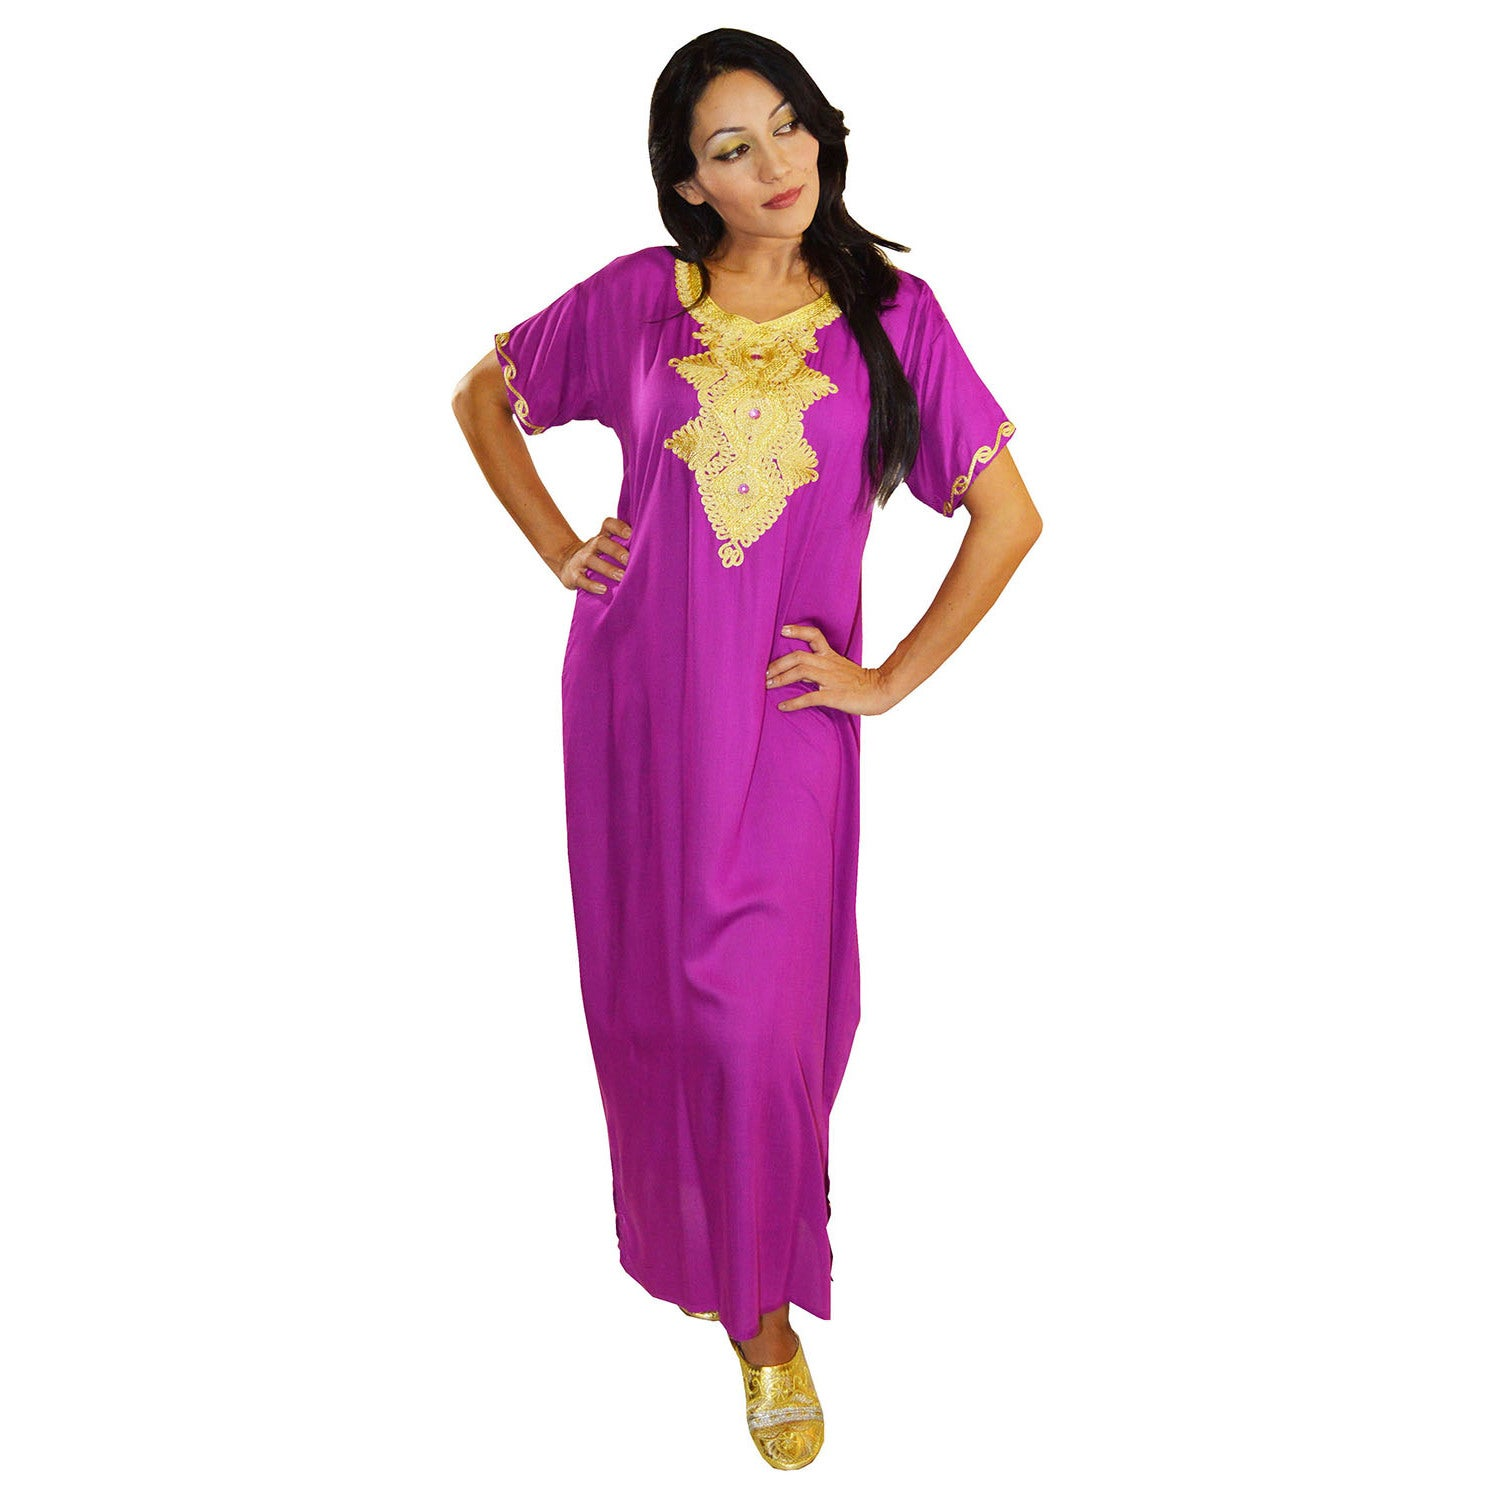 73b38aa7405 Shop Handmade Moroccan Women s Andalusia Cotton Long Caftan with Gold Embroidered  Fiber (Morocco) - Ships To Canada - Overstock - 9667845